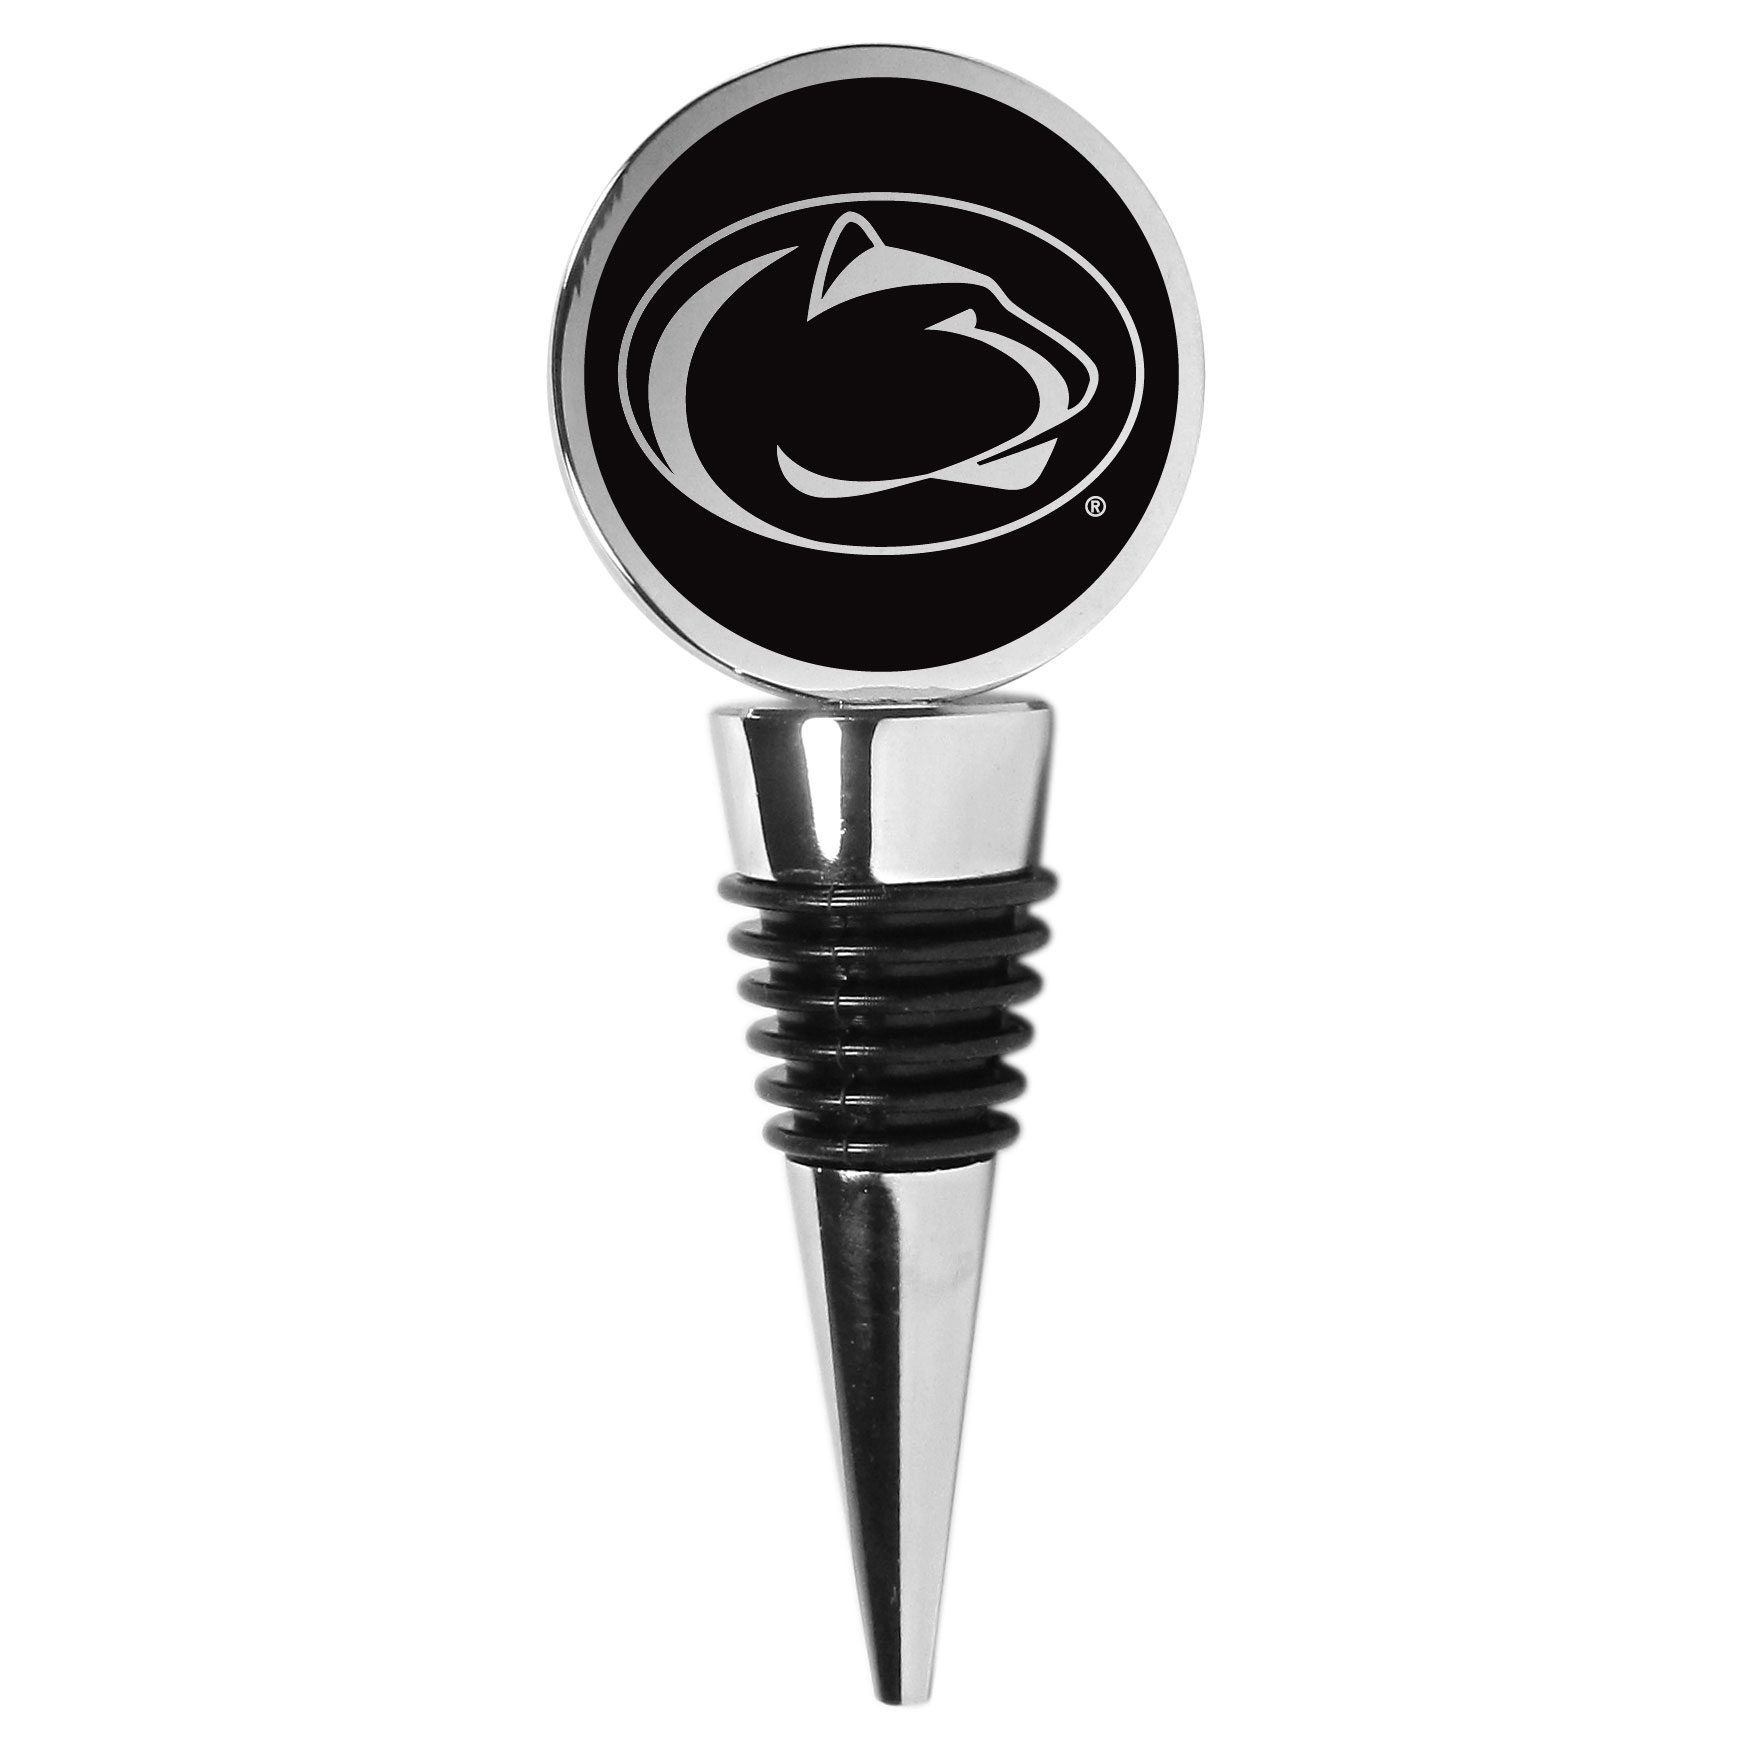 Penn St. Nittany Lions Wine Stopper - This beautiful Penn St. Nittany Lions wine stopper has a classy monochromatic logo on the top disc. The tapered rubber rings allow you to create a tight seal on multiple sizes of wine bottles so that you are able to preserve the wine for later enjoyment. This a perfect addition to a game day celebration.